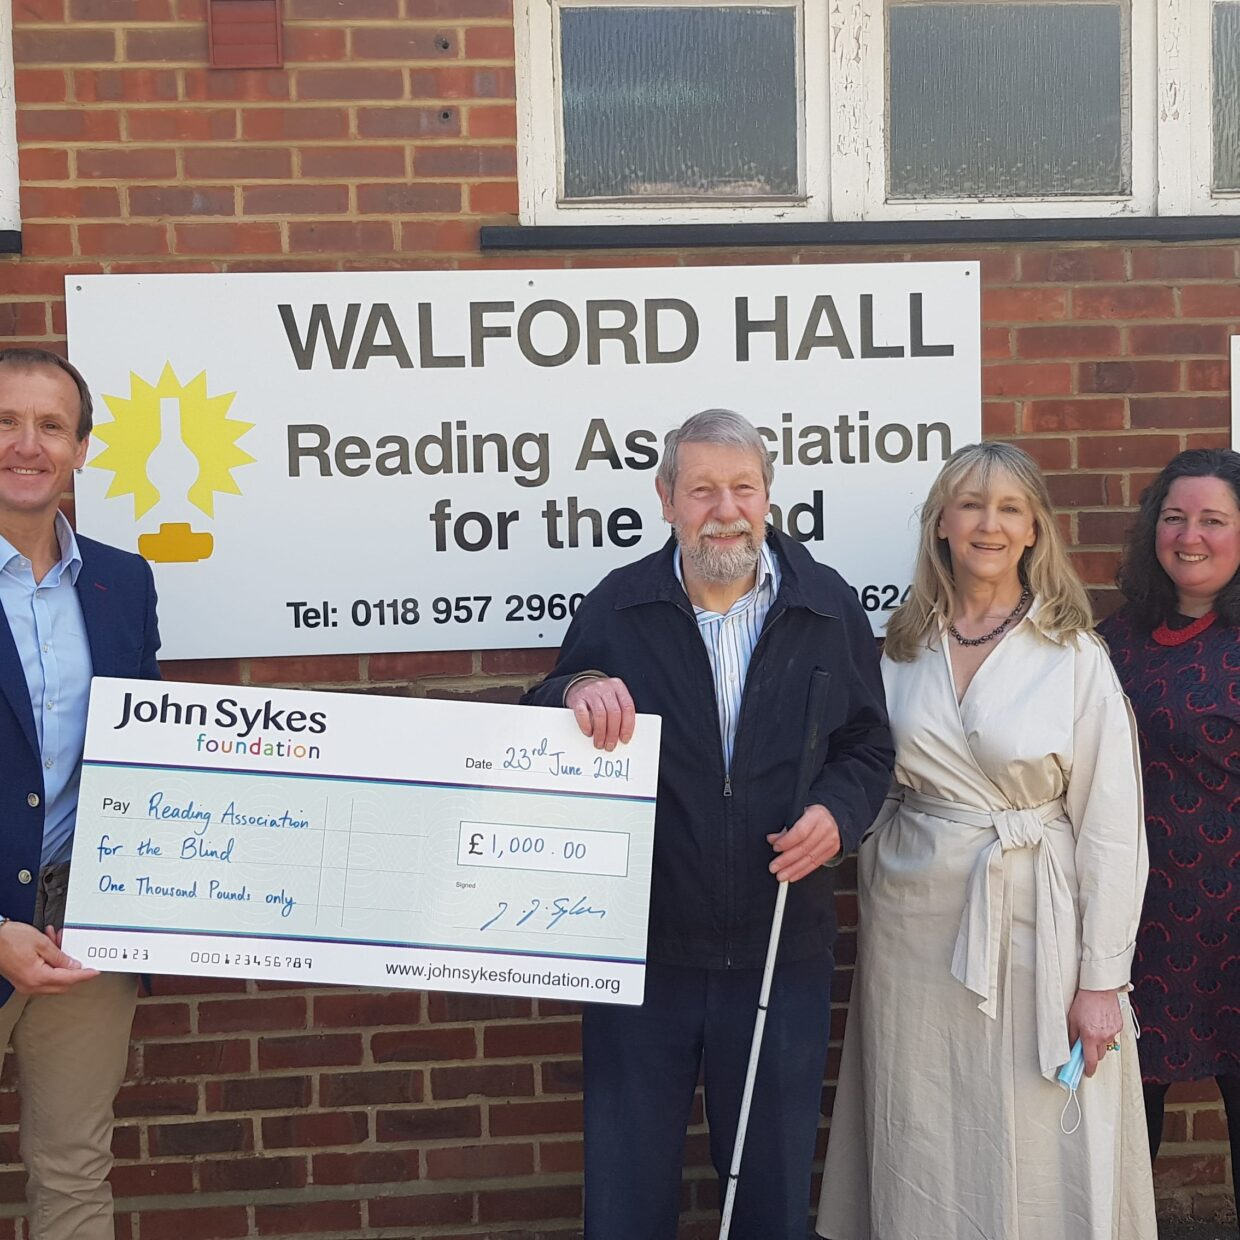 John Sykes presenting a cheque for £1000 to Bob Bristow and Karen Rowland, Trustees, and Adele Barnett-Ward, CEO